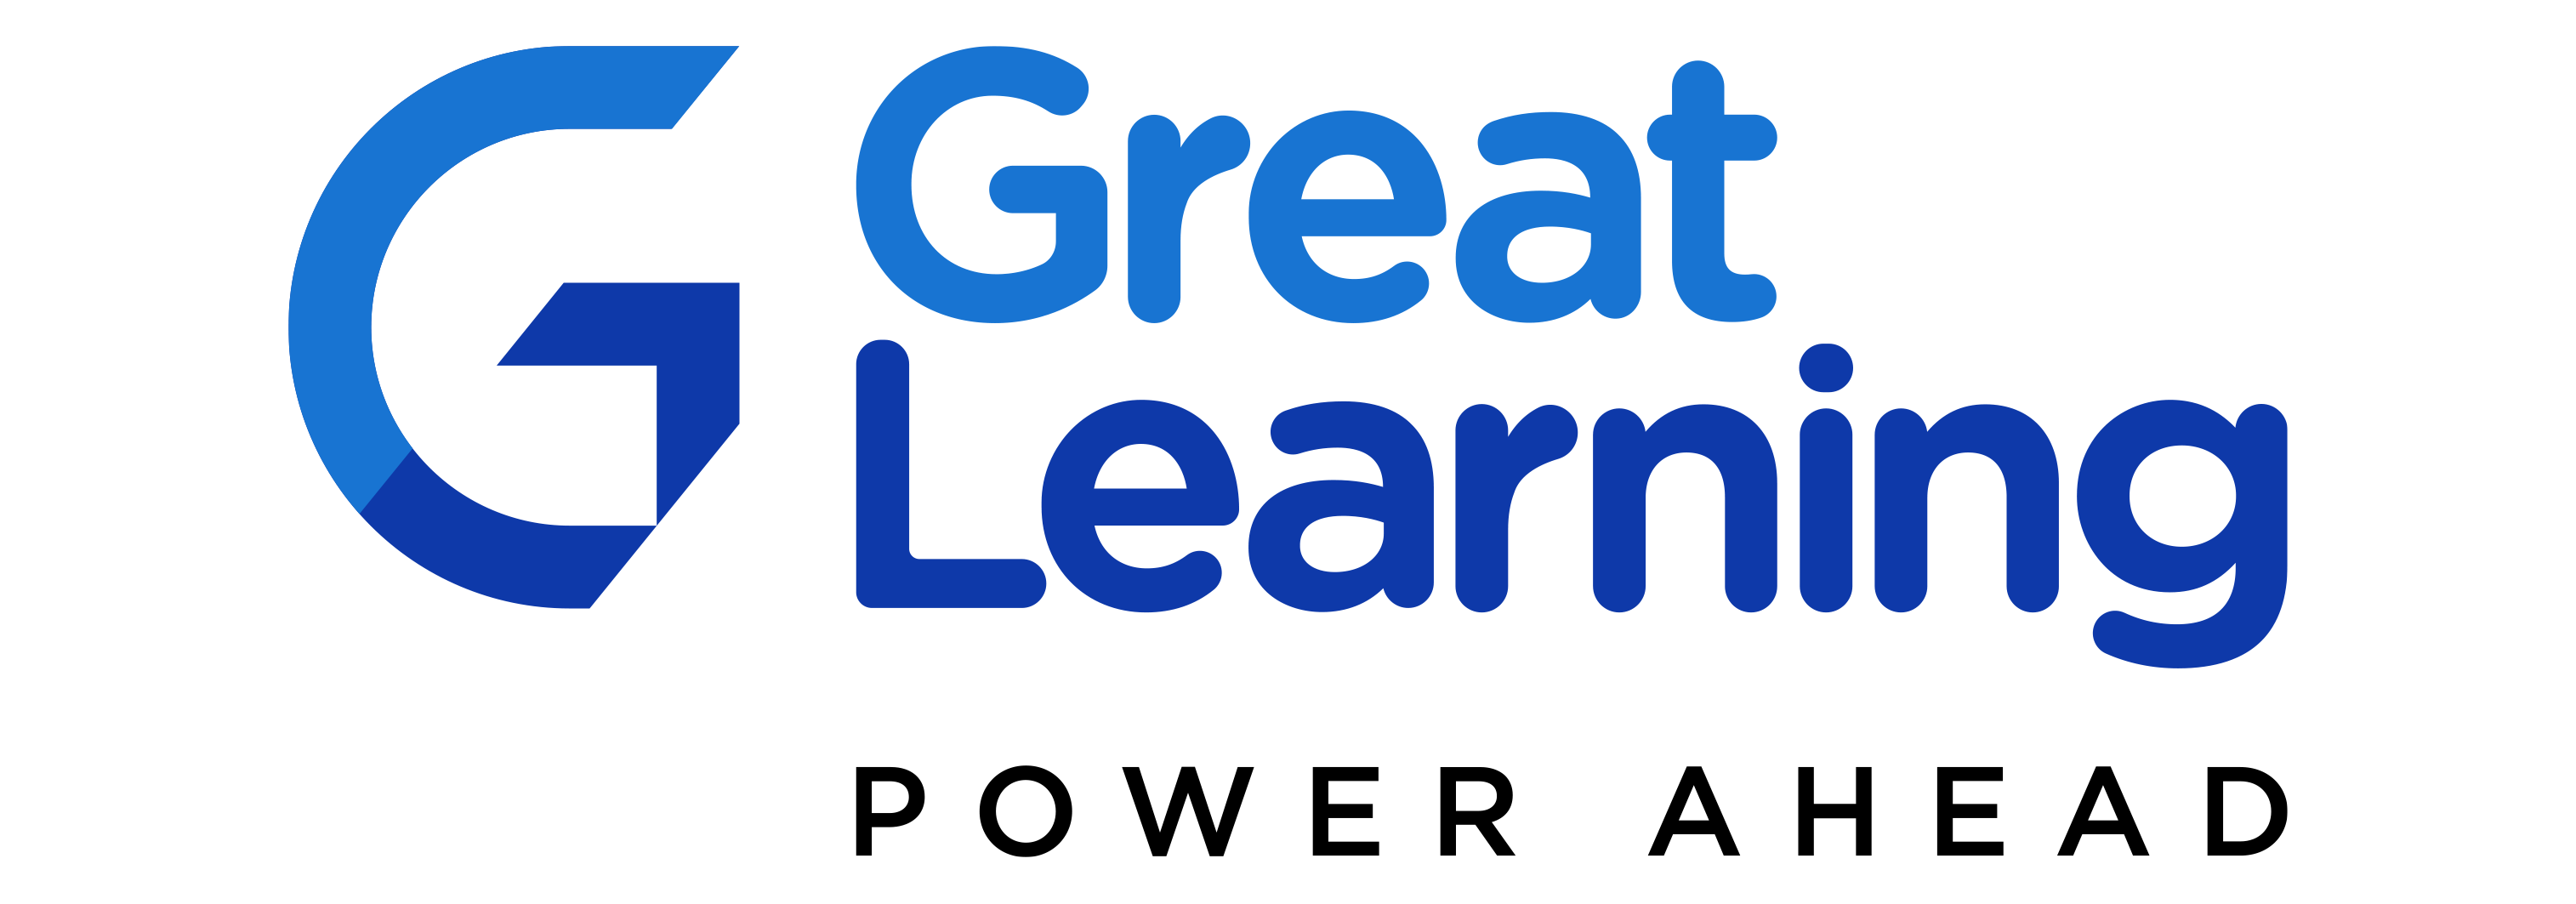 Greatlearning.in Image